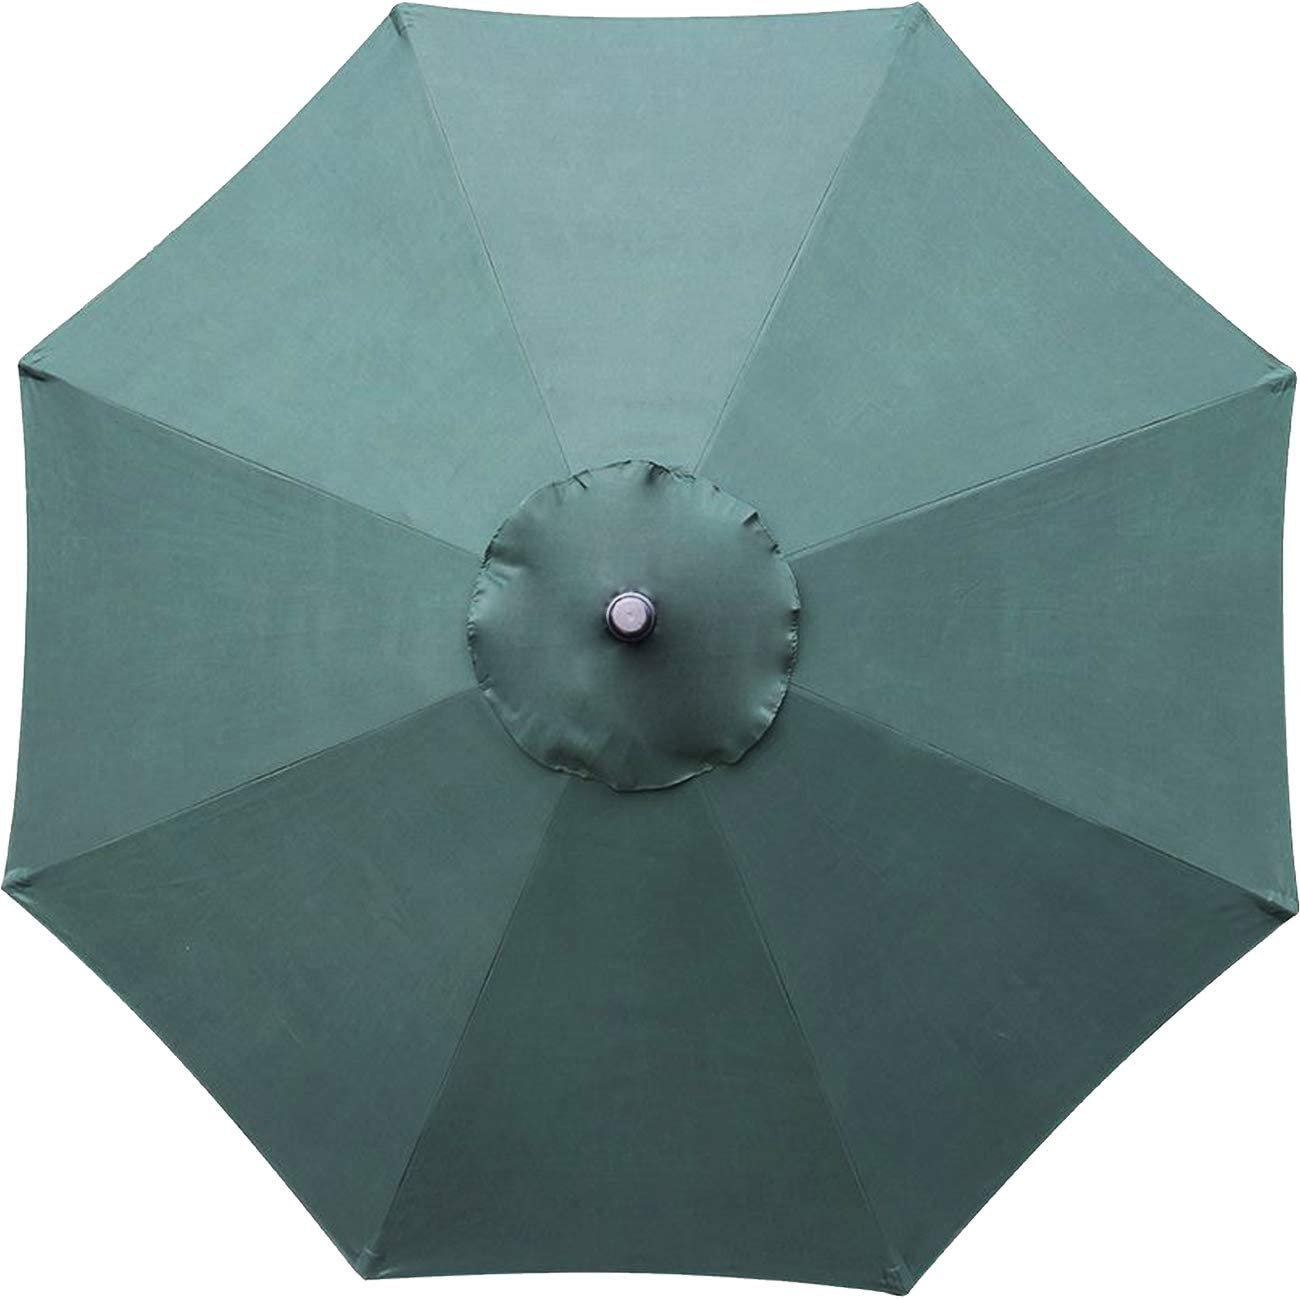 Sunnyglade 9ft Patio Umbrella Replacement Canopy Market Umbrella Top Outdoor Umbrella Canopy with 8 Ribs (Green)